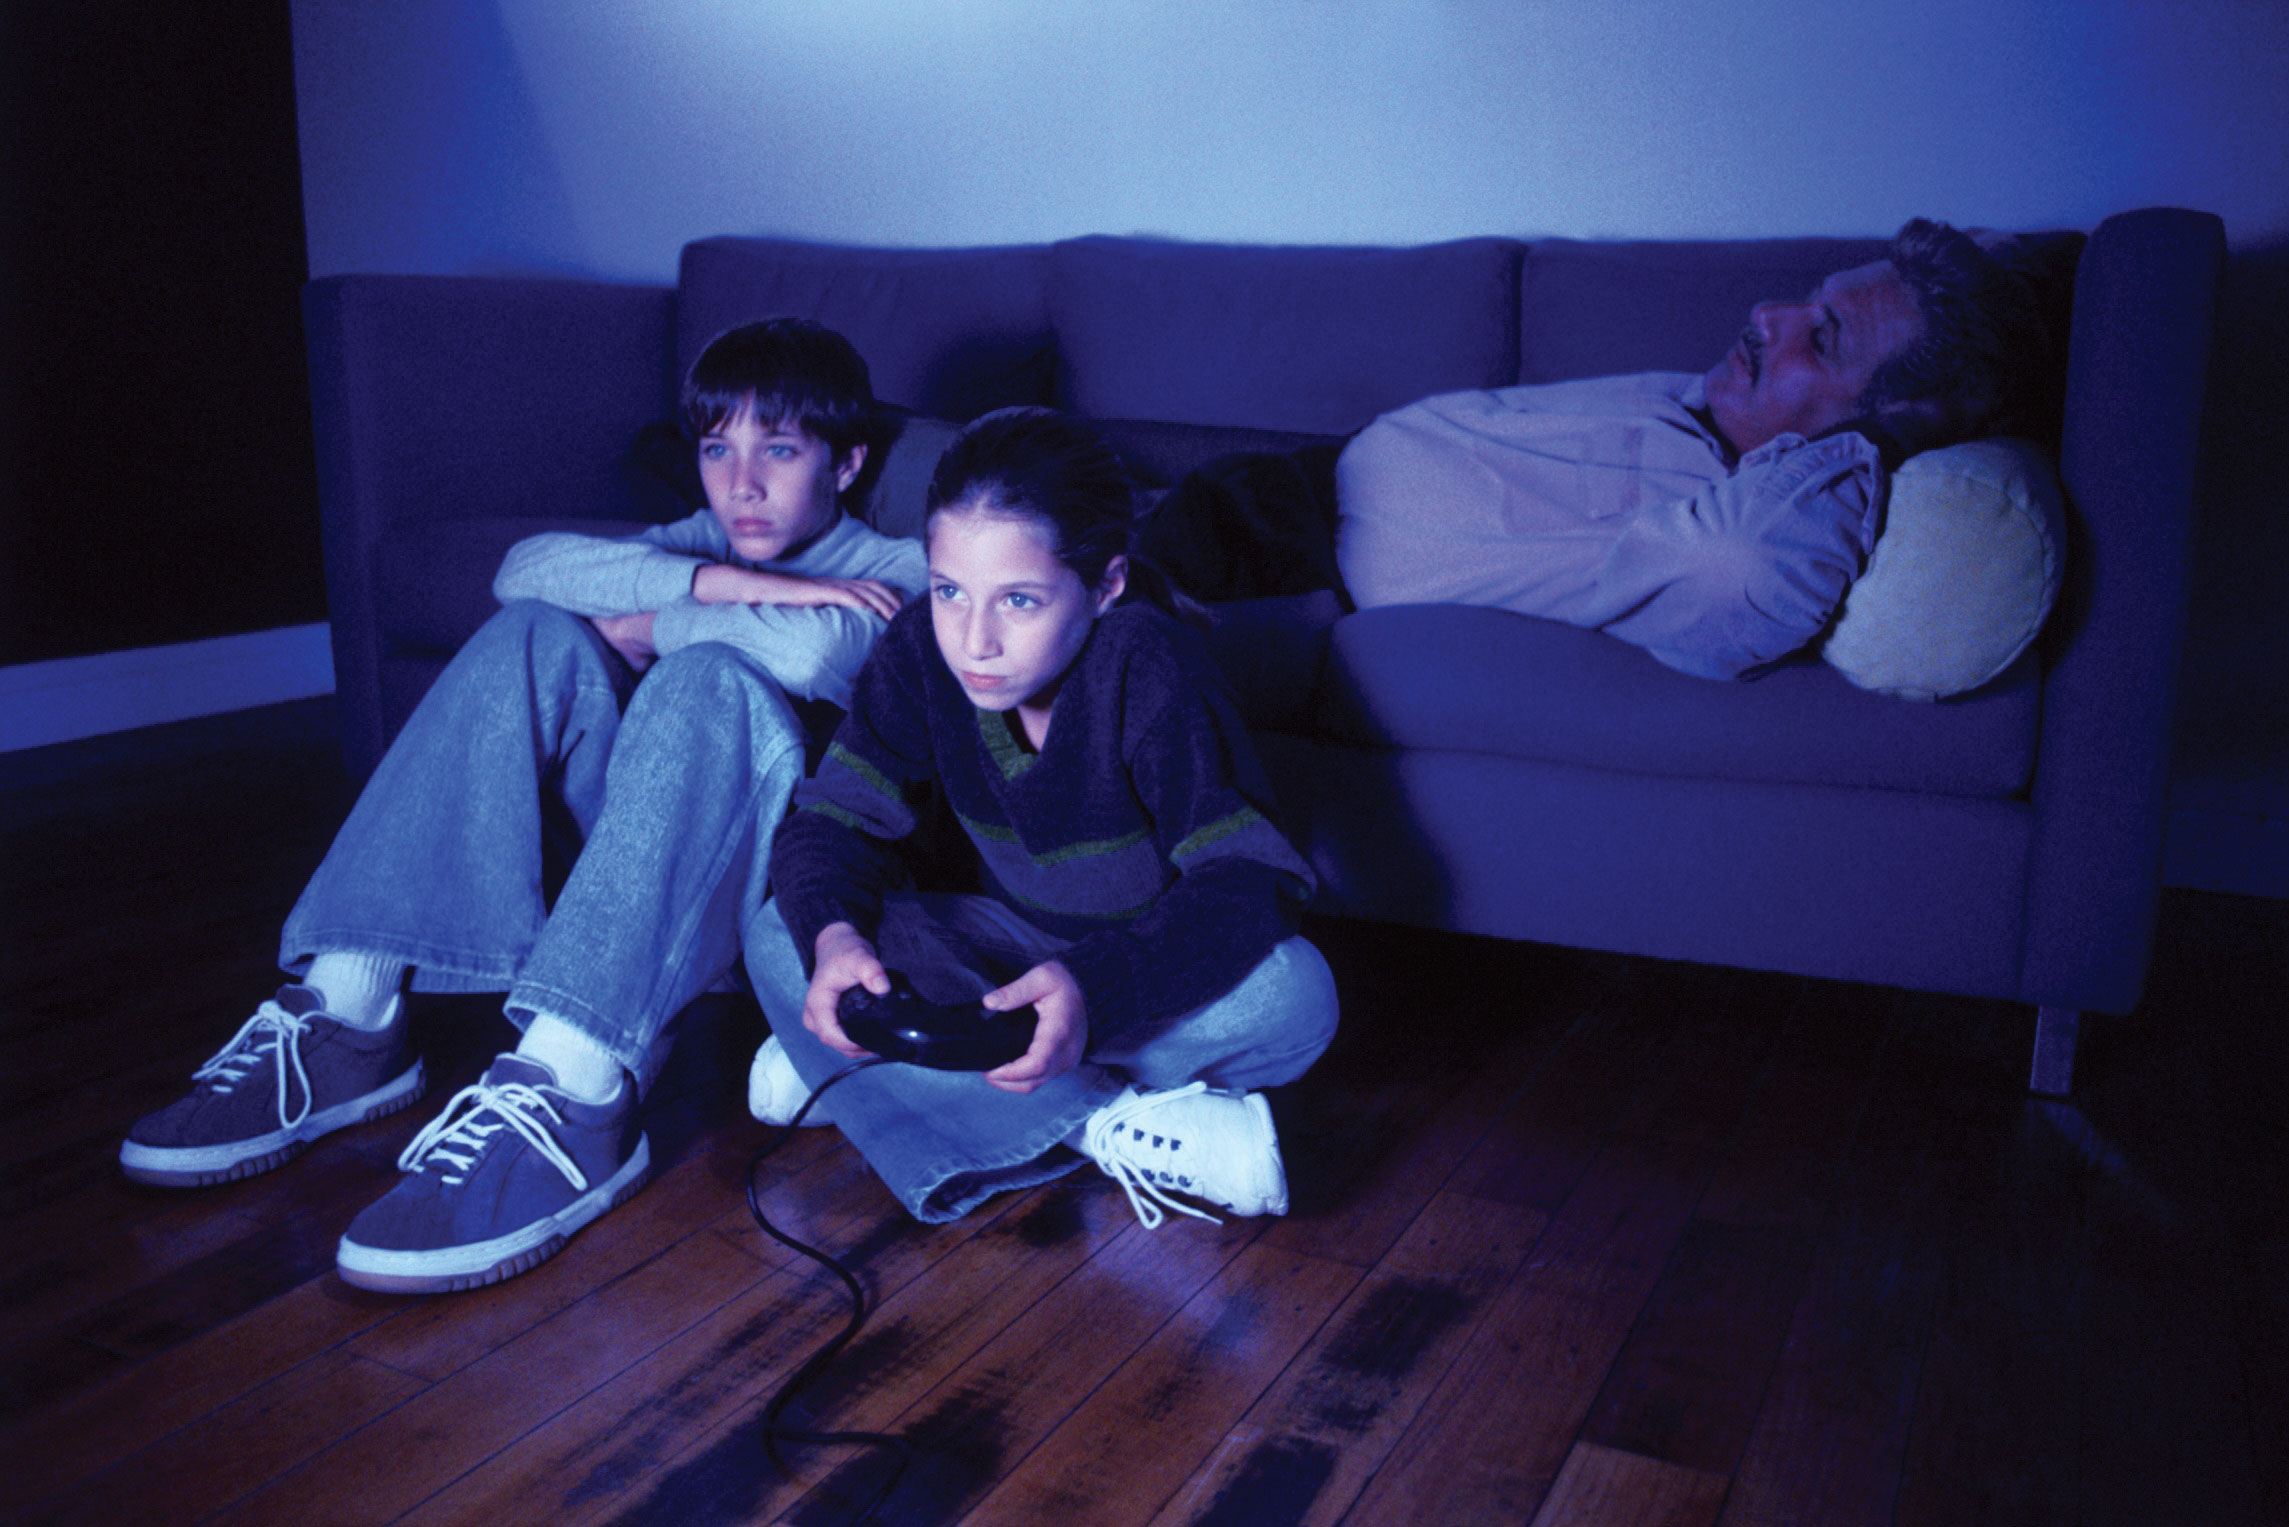 electronic games and entertainment